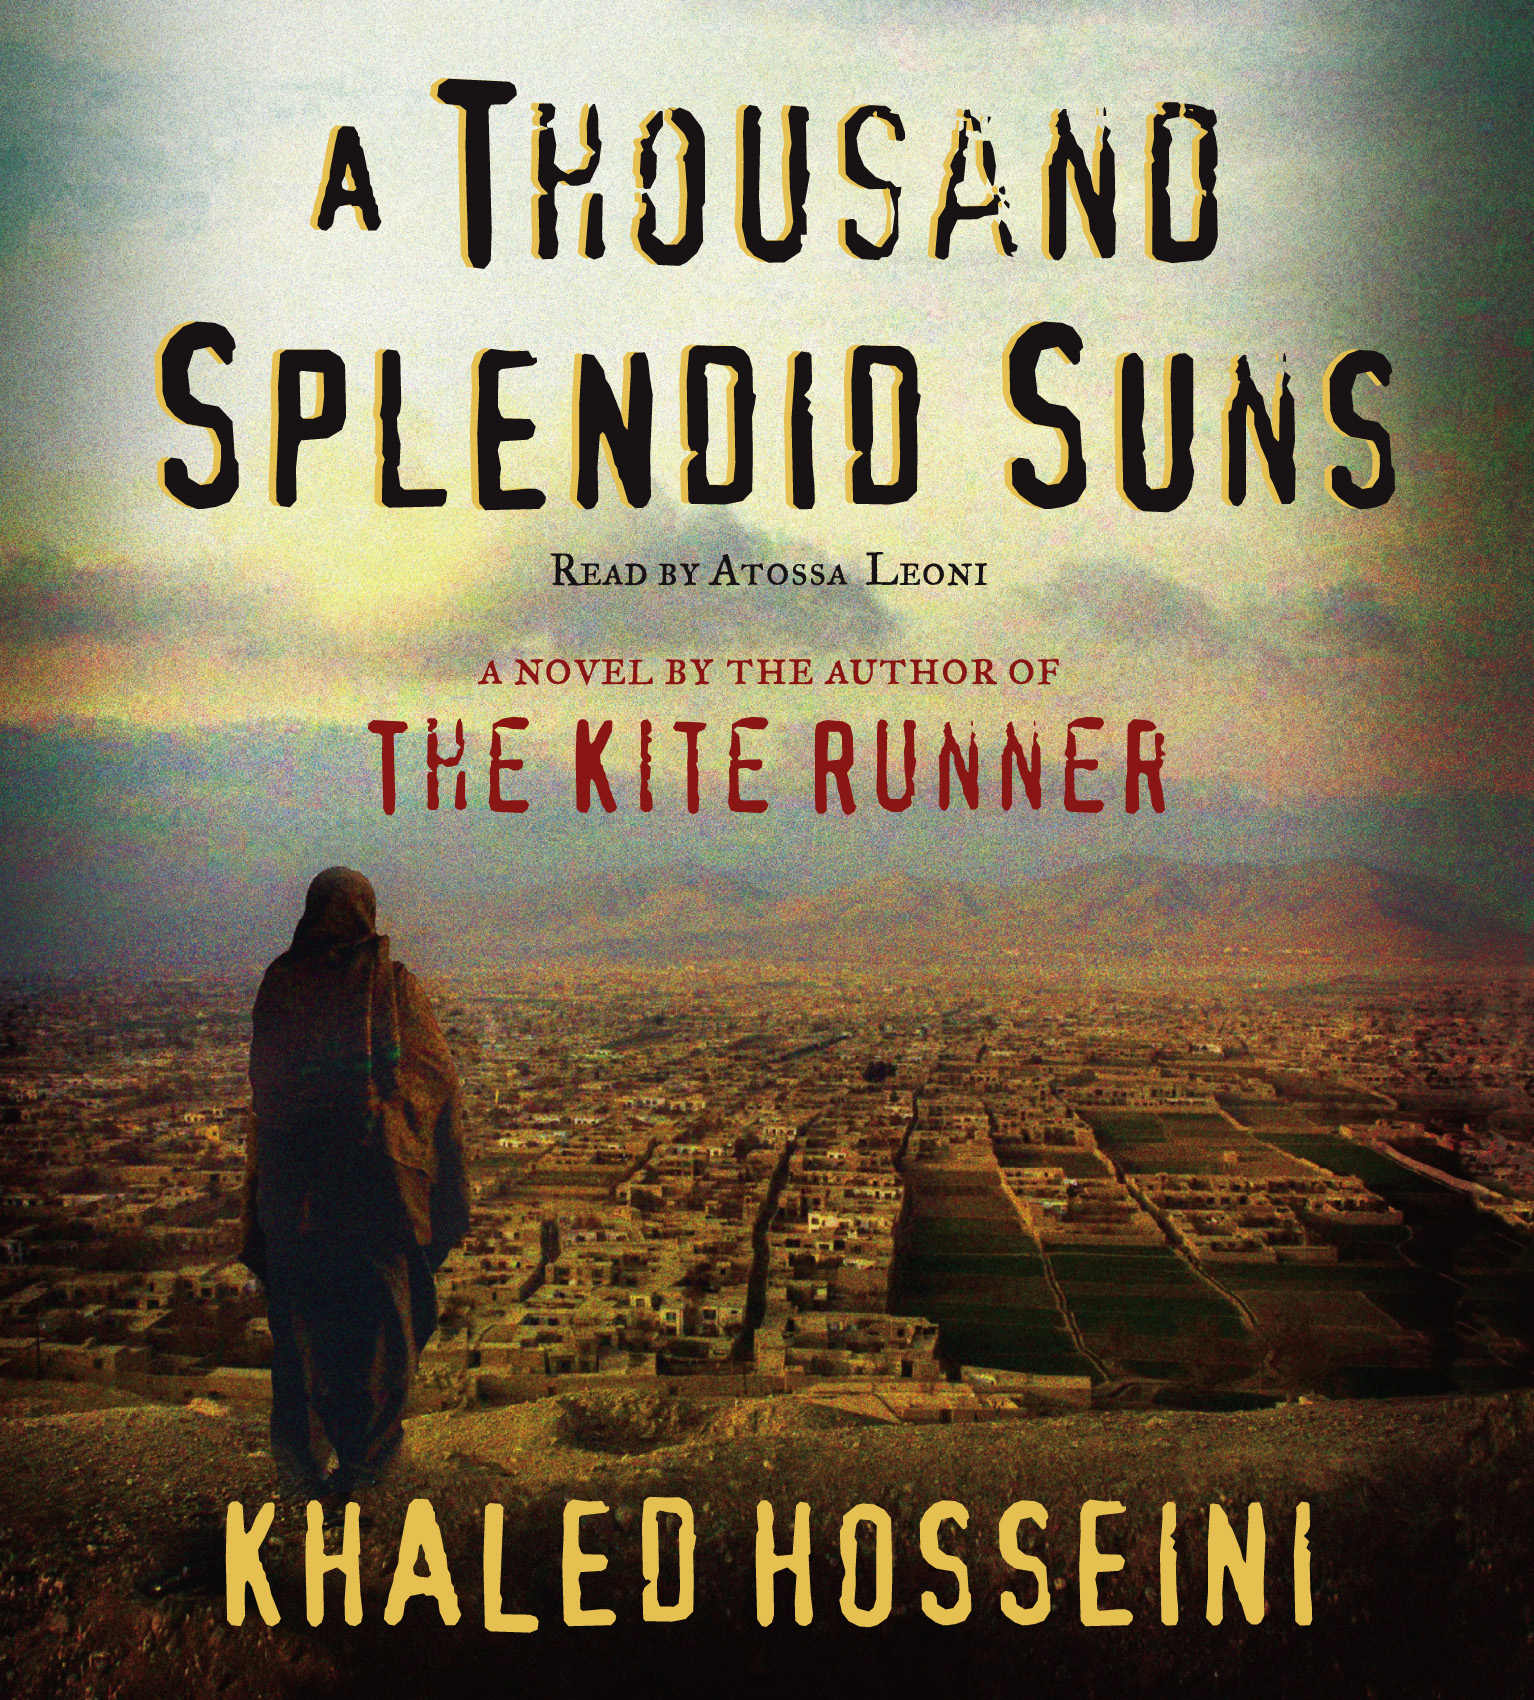 "a thousand splendid suns relationships Afghan-born american novelist and physician khaled hosseini's second bestselling novel, a thousand splendid suns, written in 2007, is set in ""war-ravaged landscape of afghanistan"", and it focuses on the tumultuous lives and relationship of mariam and laila."